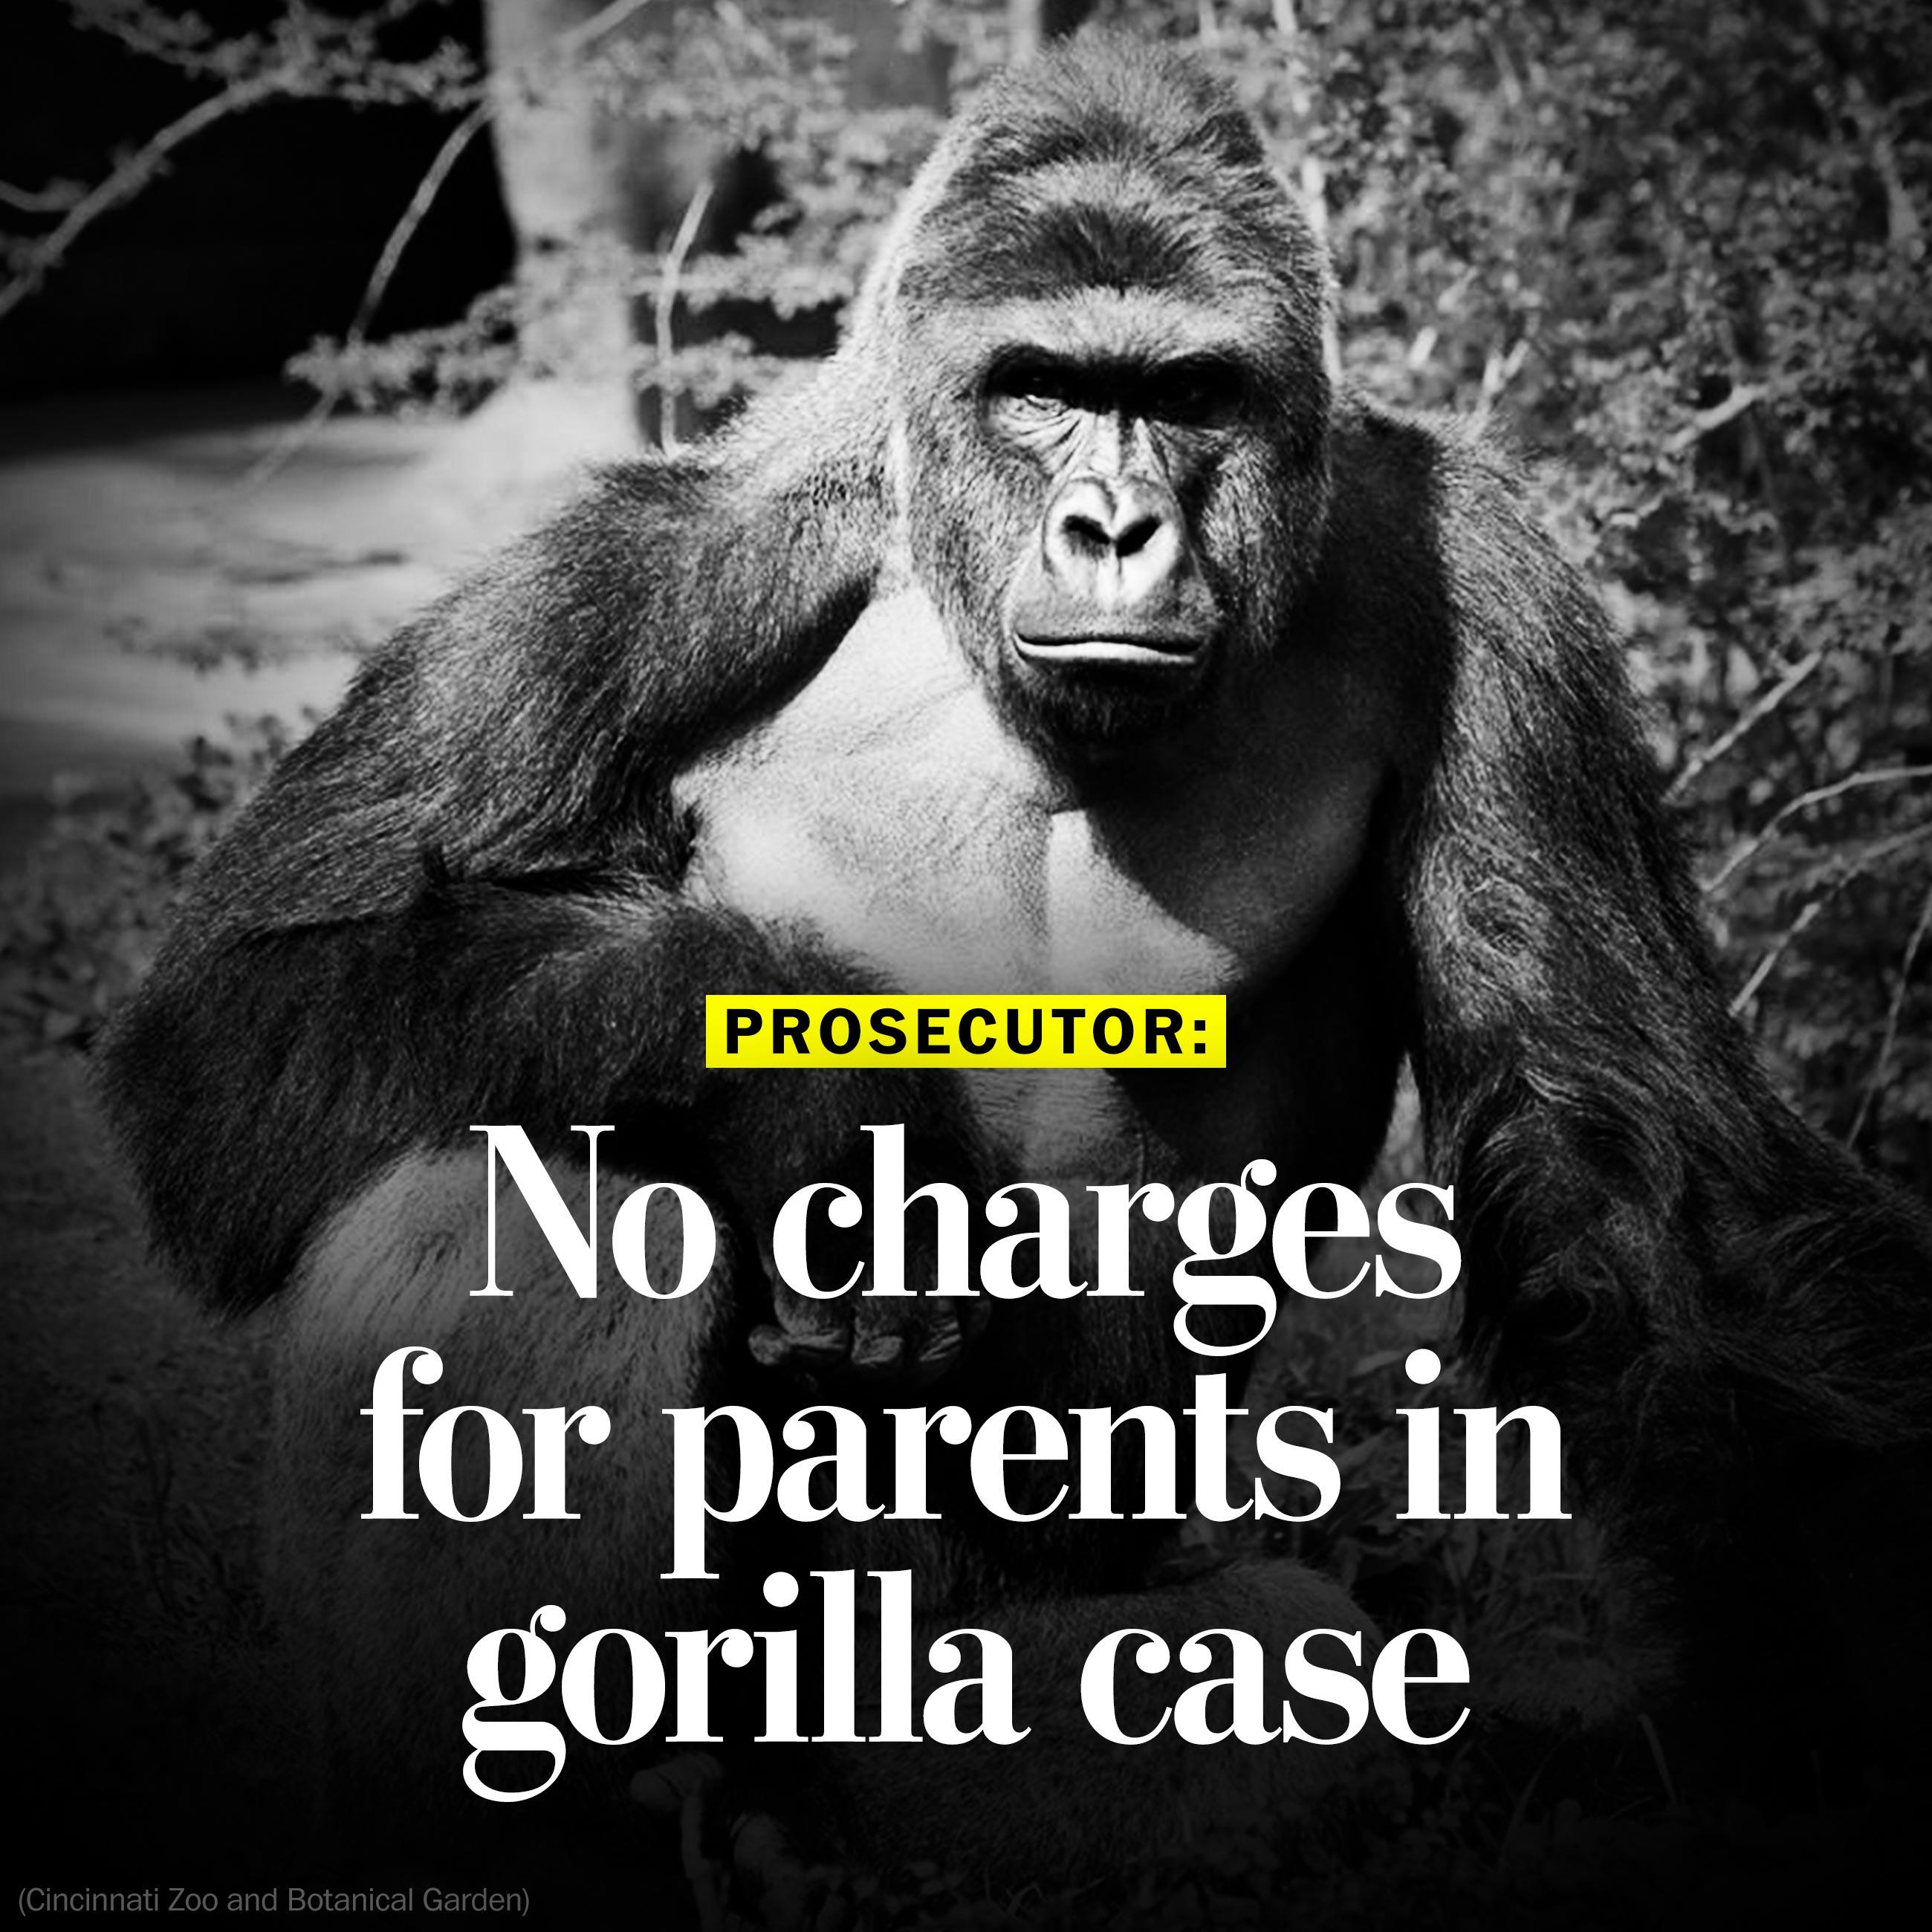 Prosecutor: No charges for parents in gorilla case